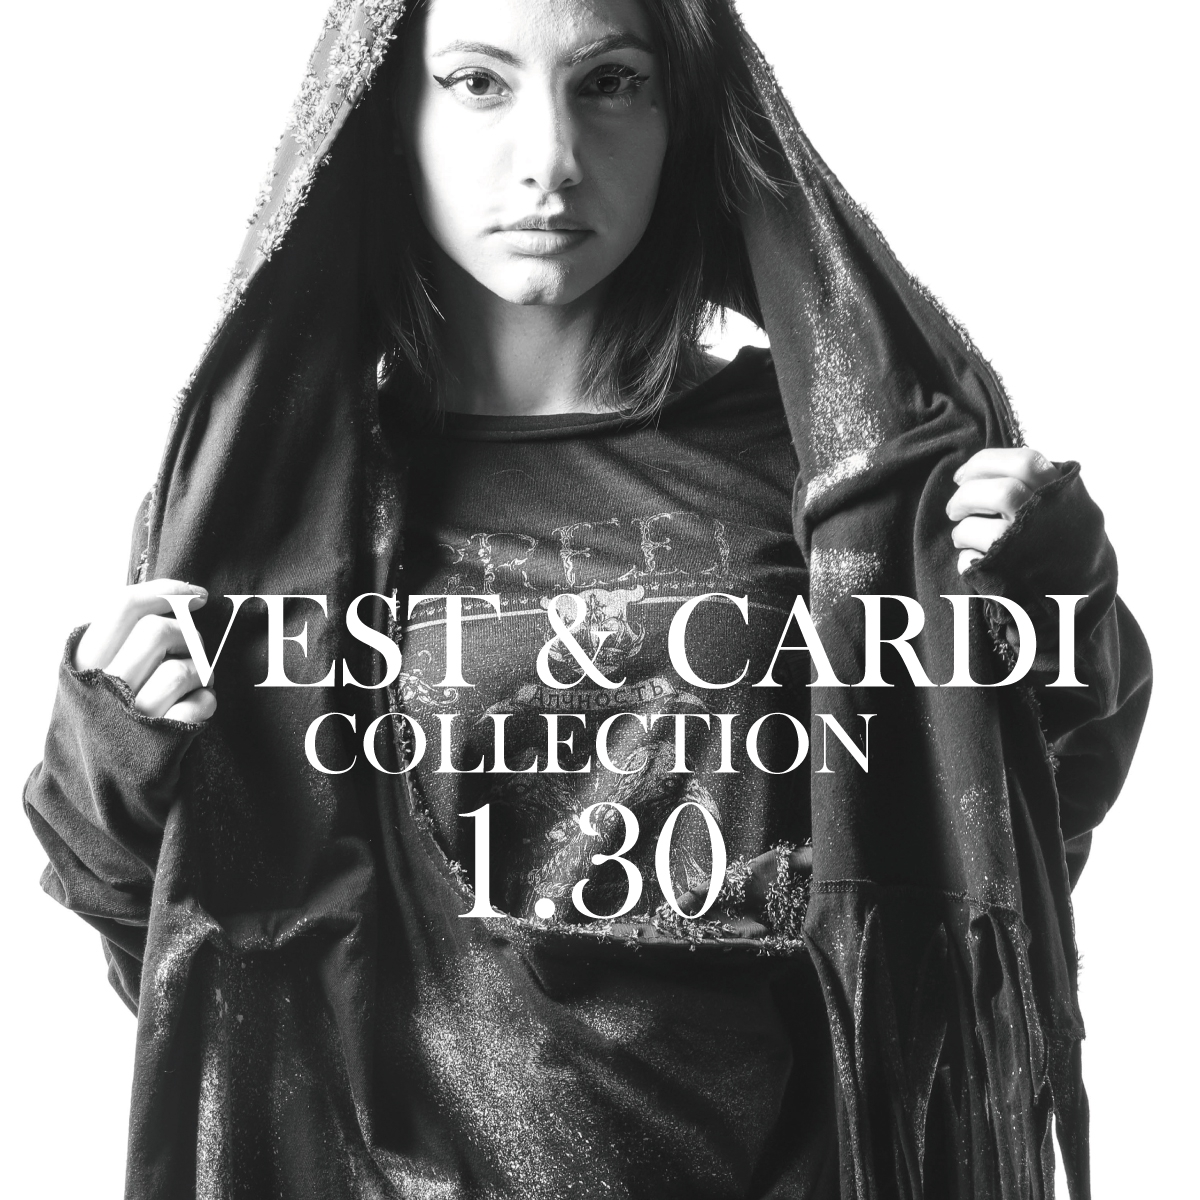 0130【VEST&CARDI COLLECTION】